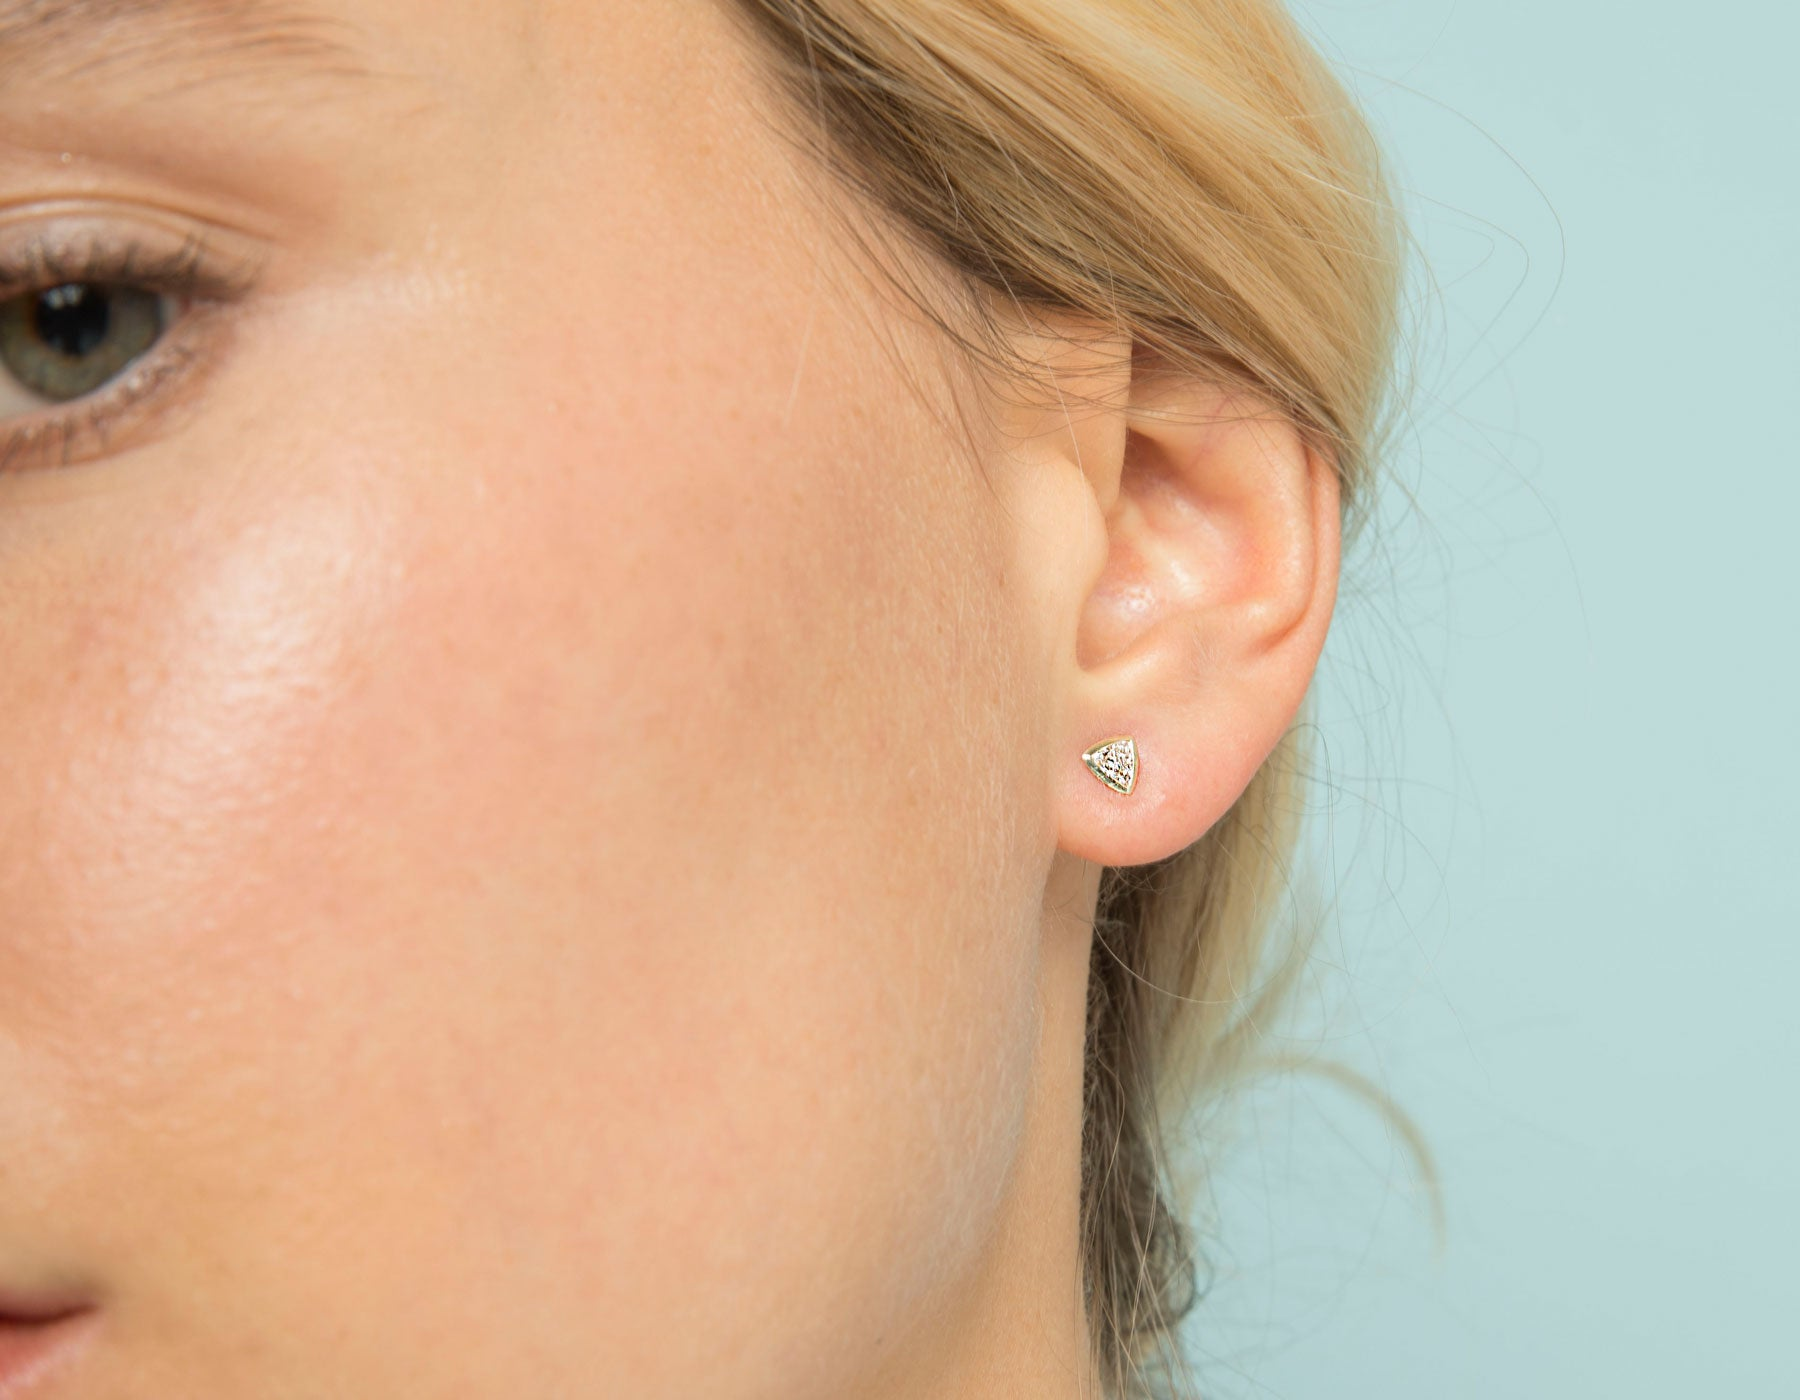 Model wearing dainty minimalist Trillion Diamond Bezel Earring by Vrai in 14k solid gold